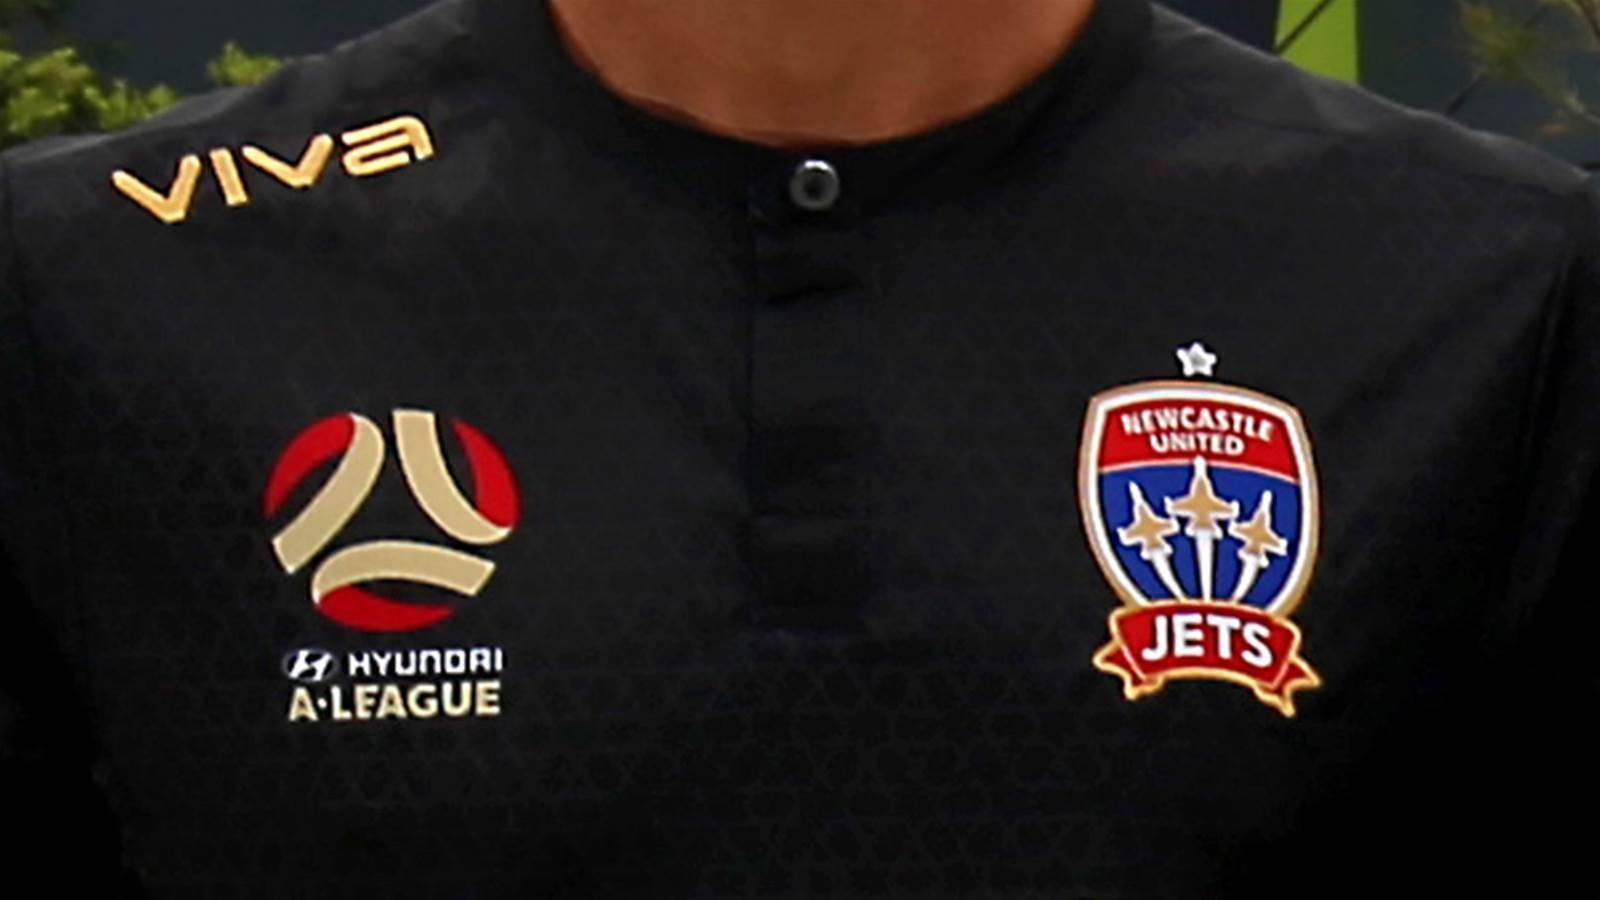 Newcastle unveil new jet black kit